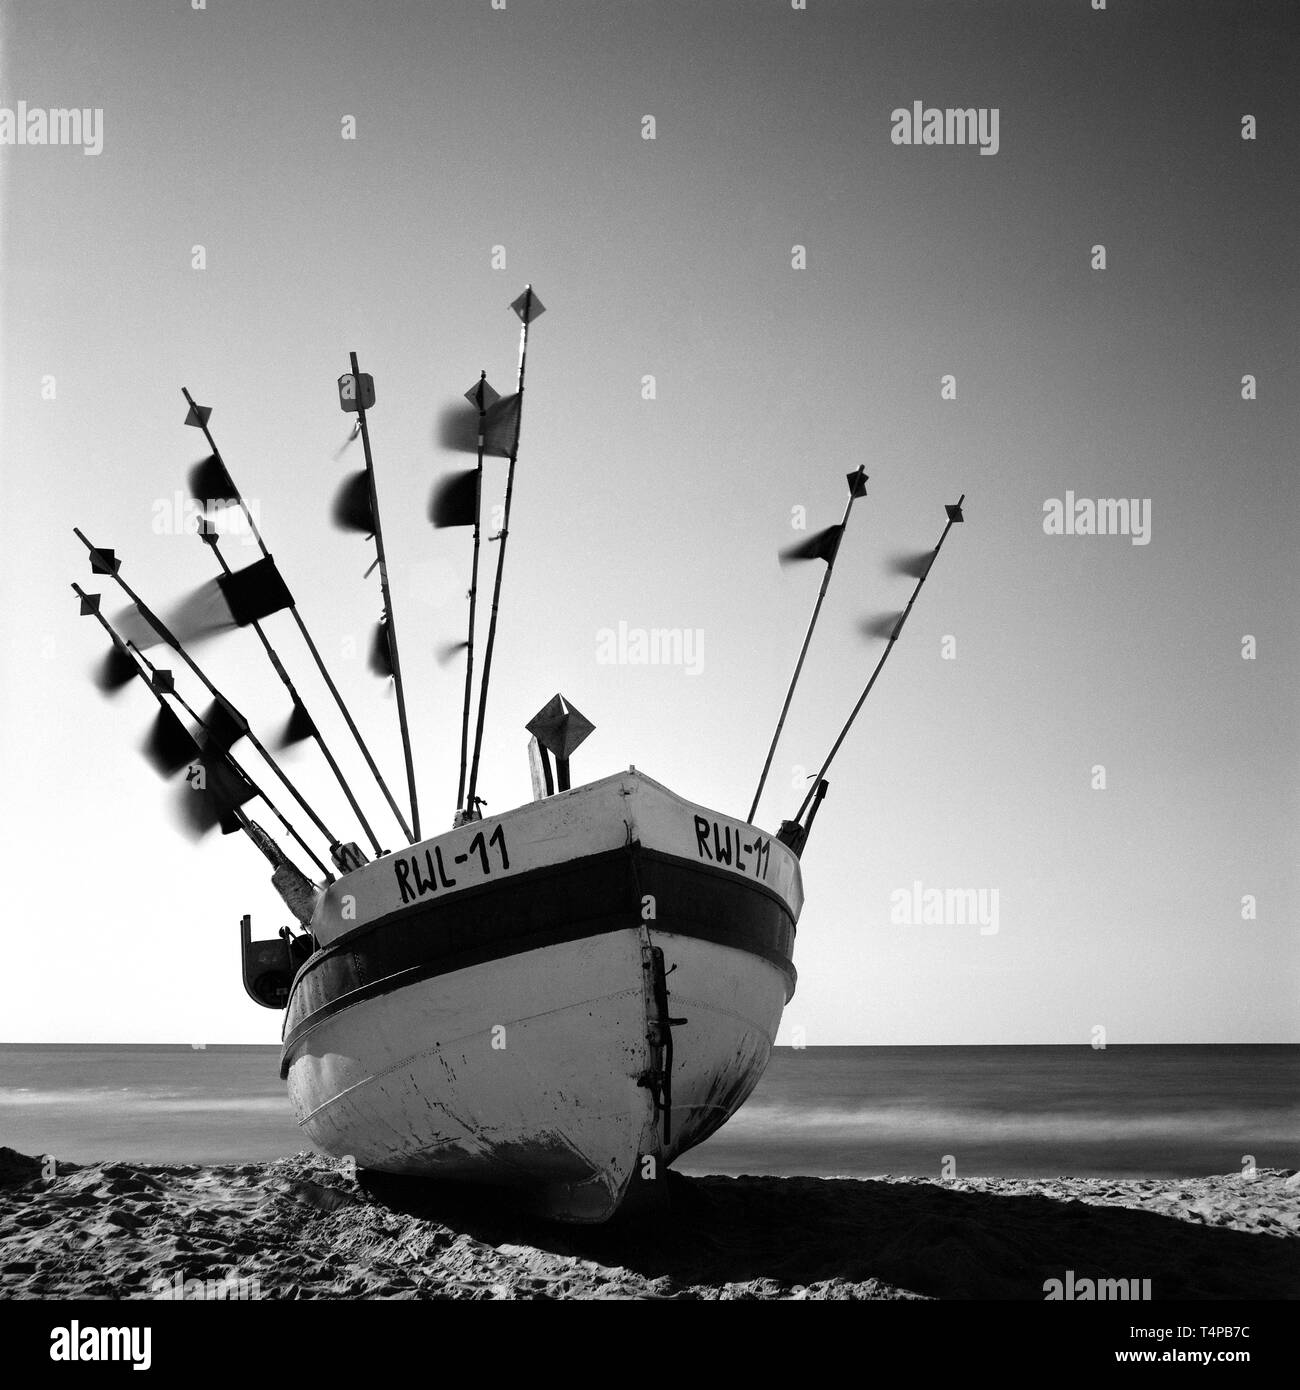 fishing boat on beach in Poland at Baltic sea. finert analog black and white photography. Artwork - Stock Image